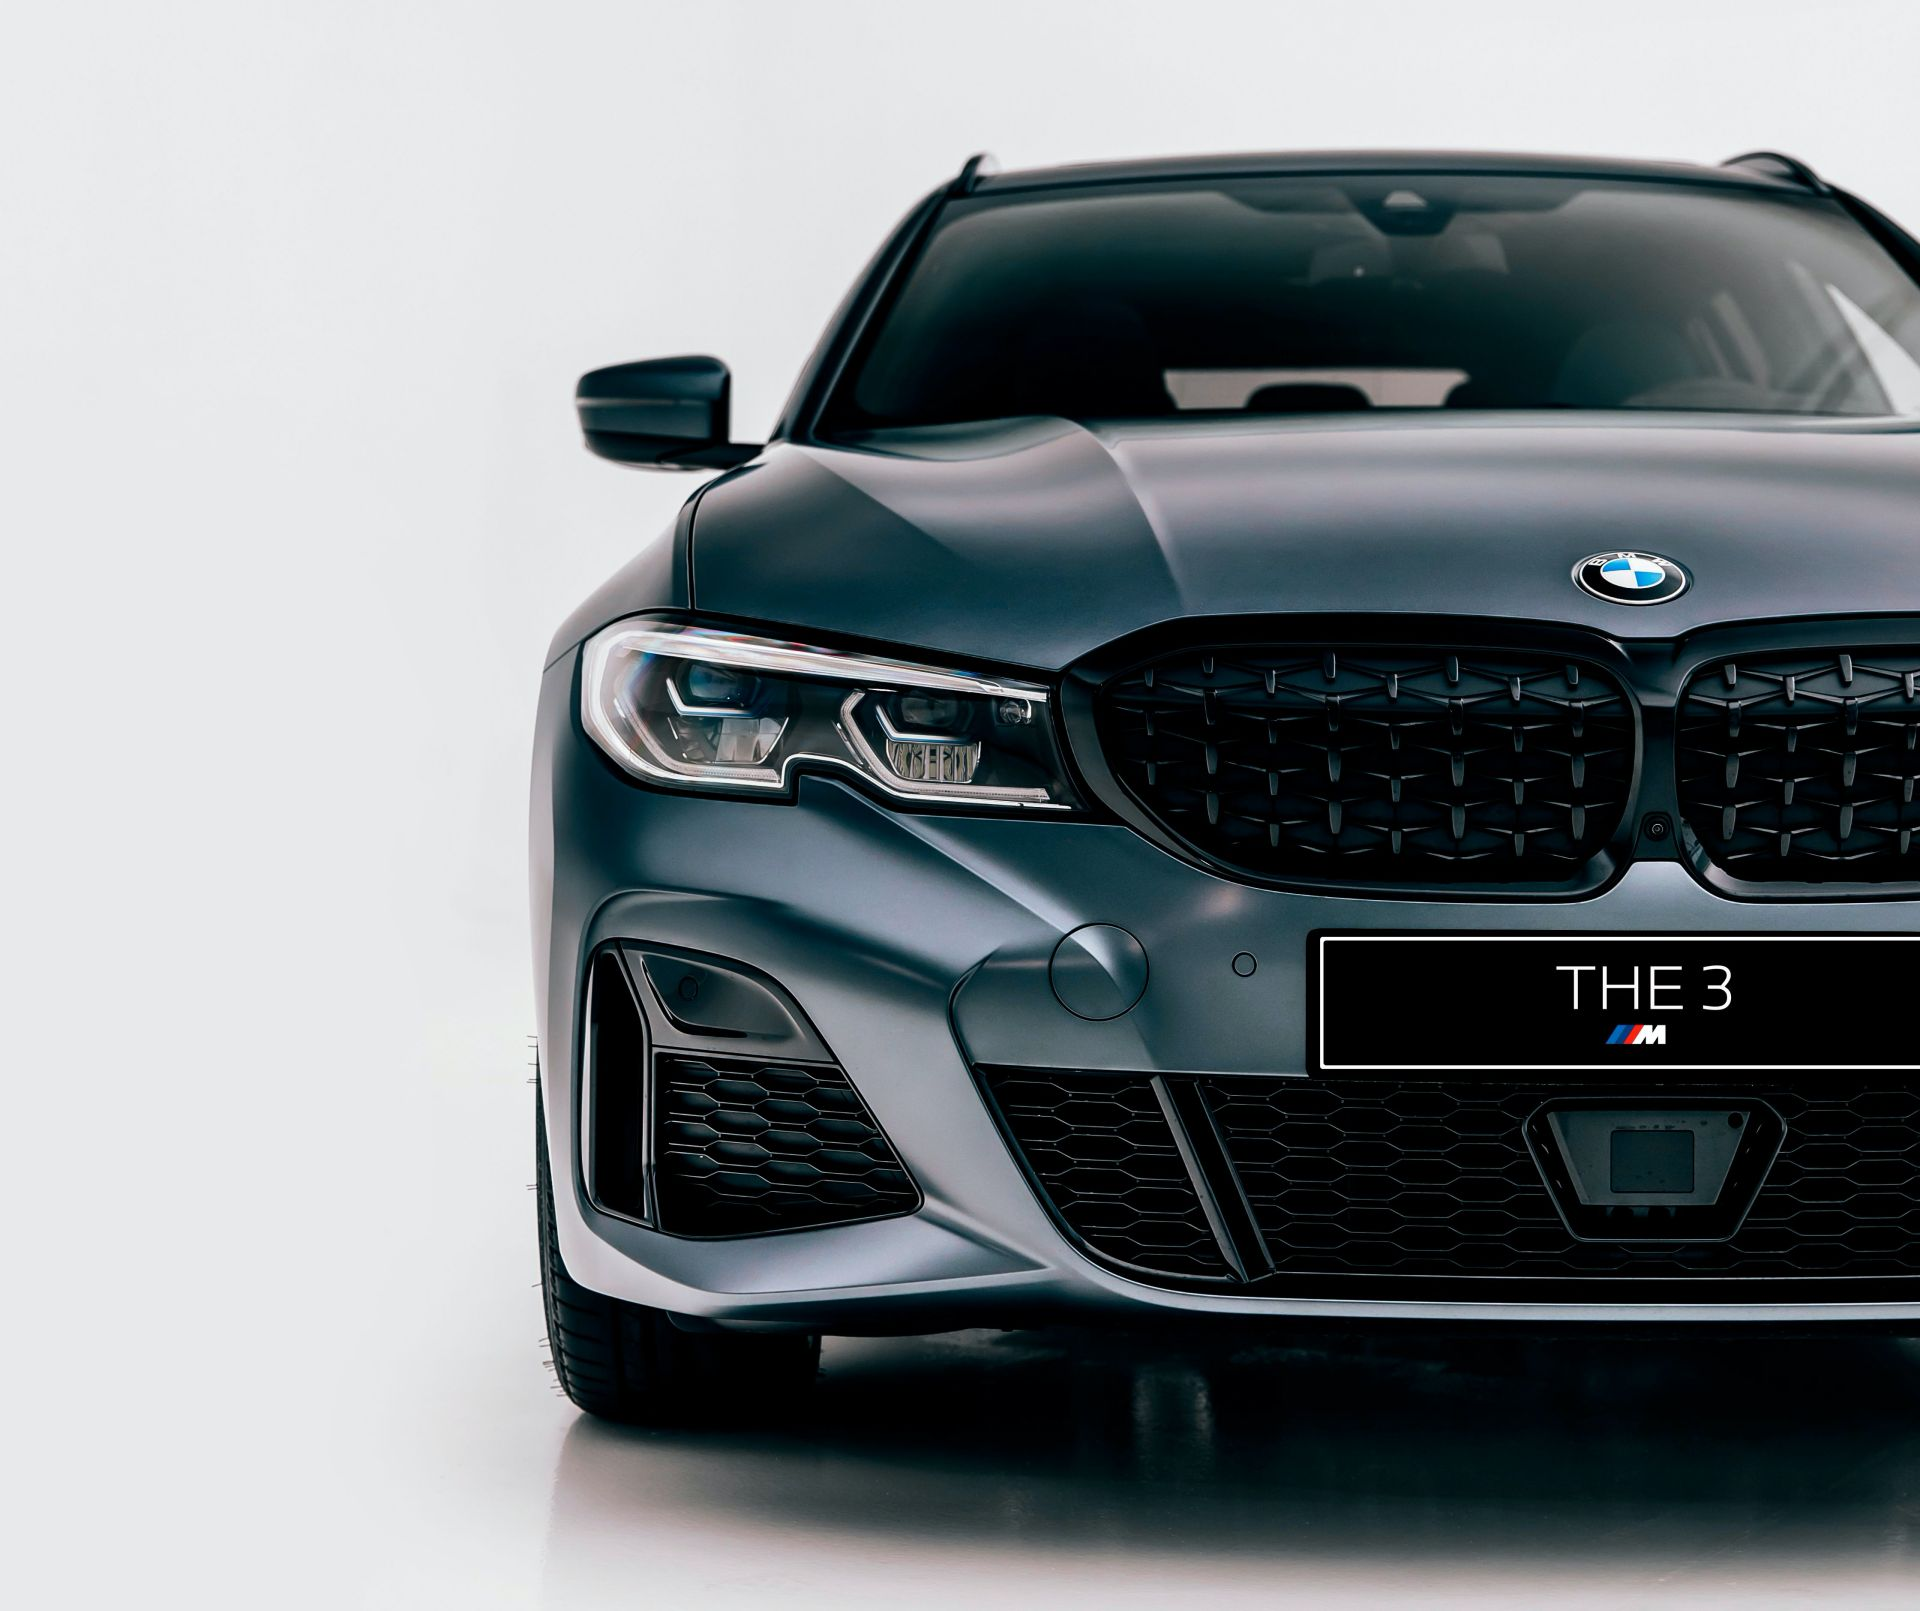 2020-BMW-M340i-xDrive-Touring-First-Edition-20